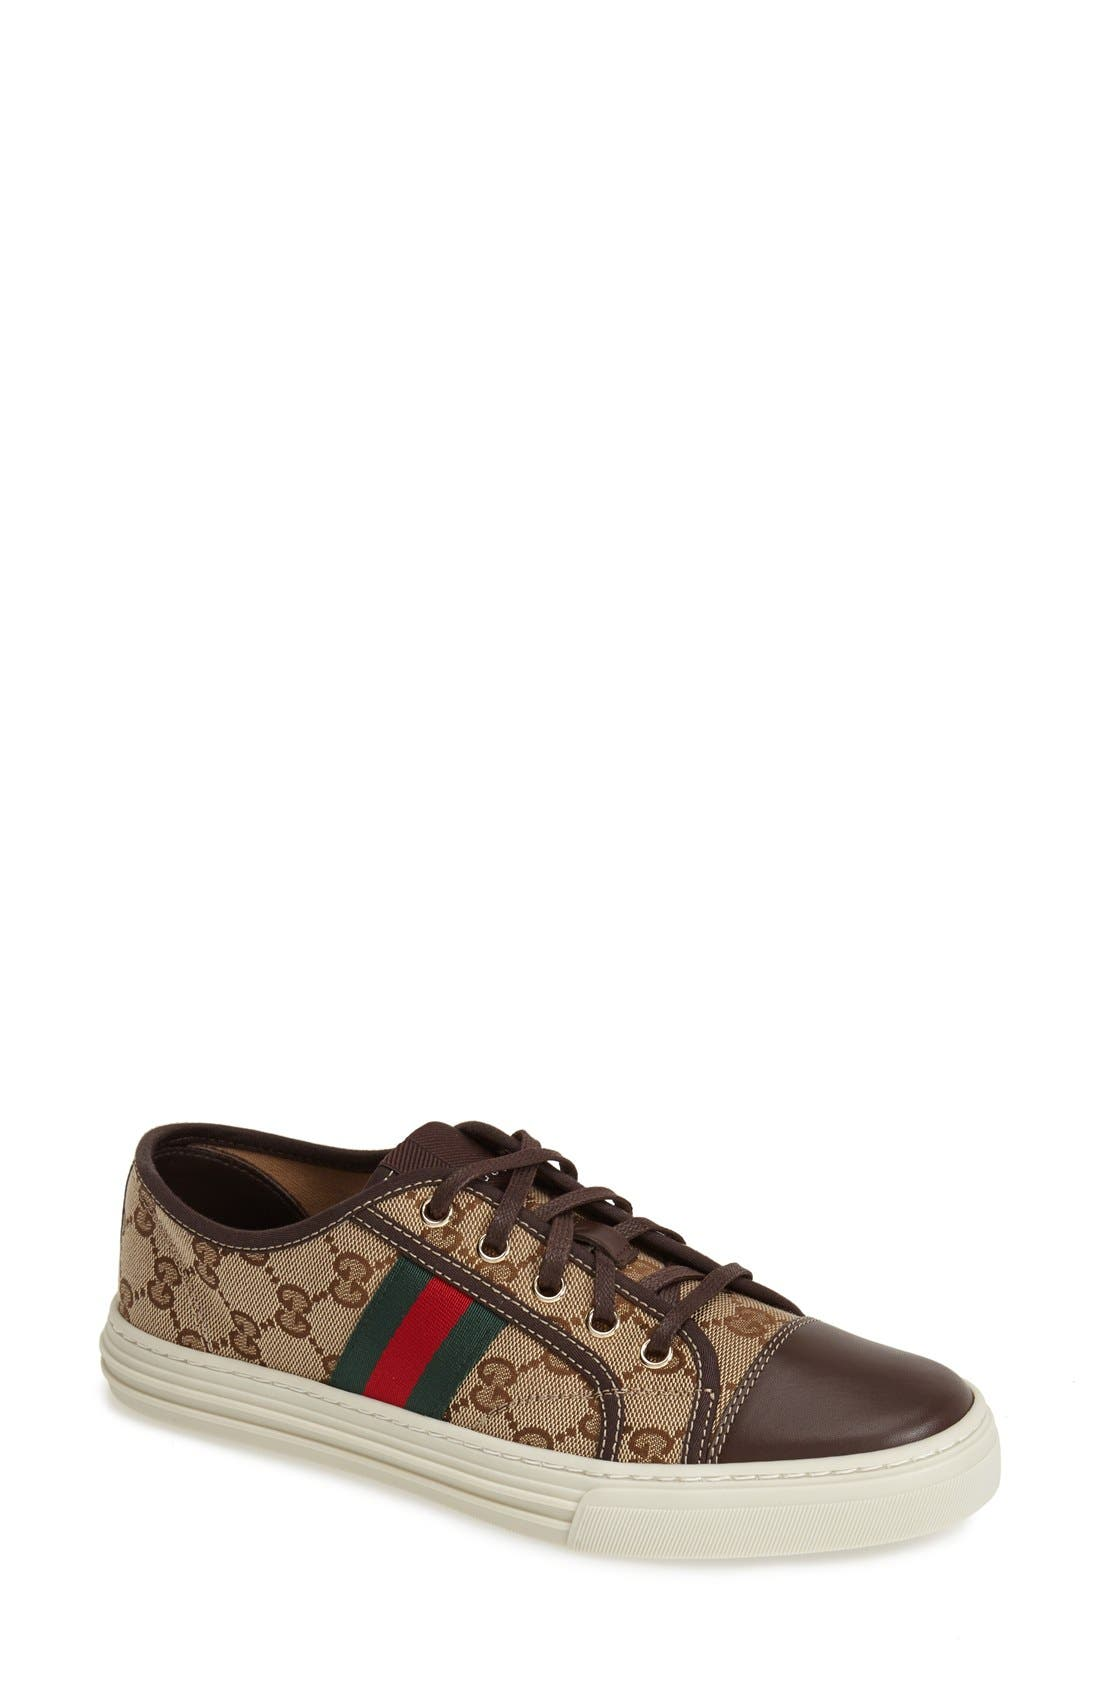 Alternate Image 1 Selected - Gucci 'California' Sneaker (Women)